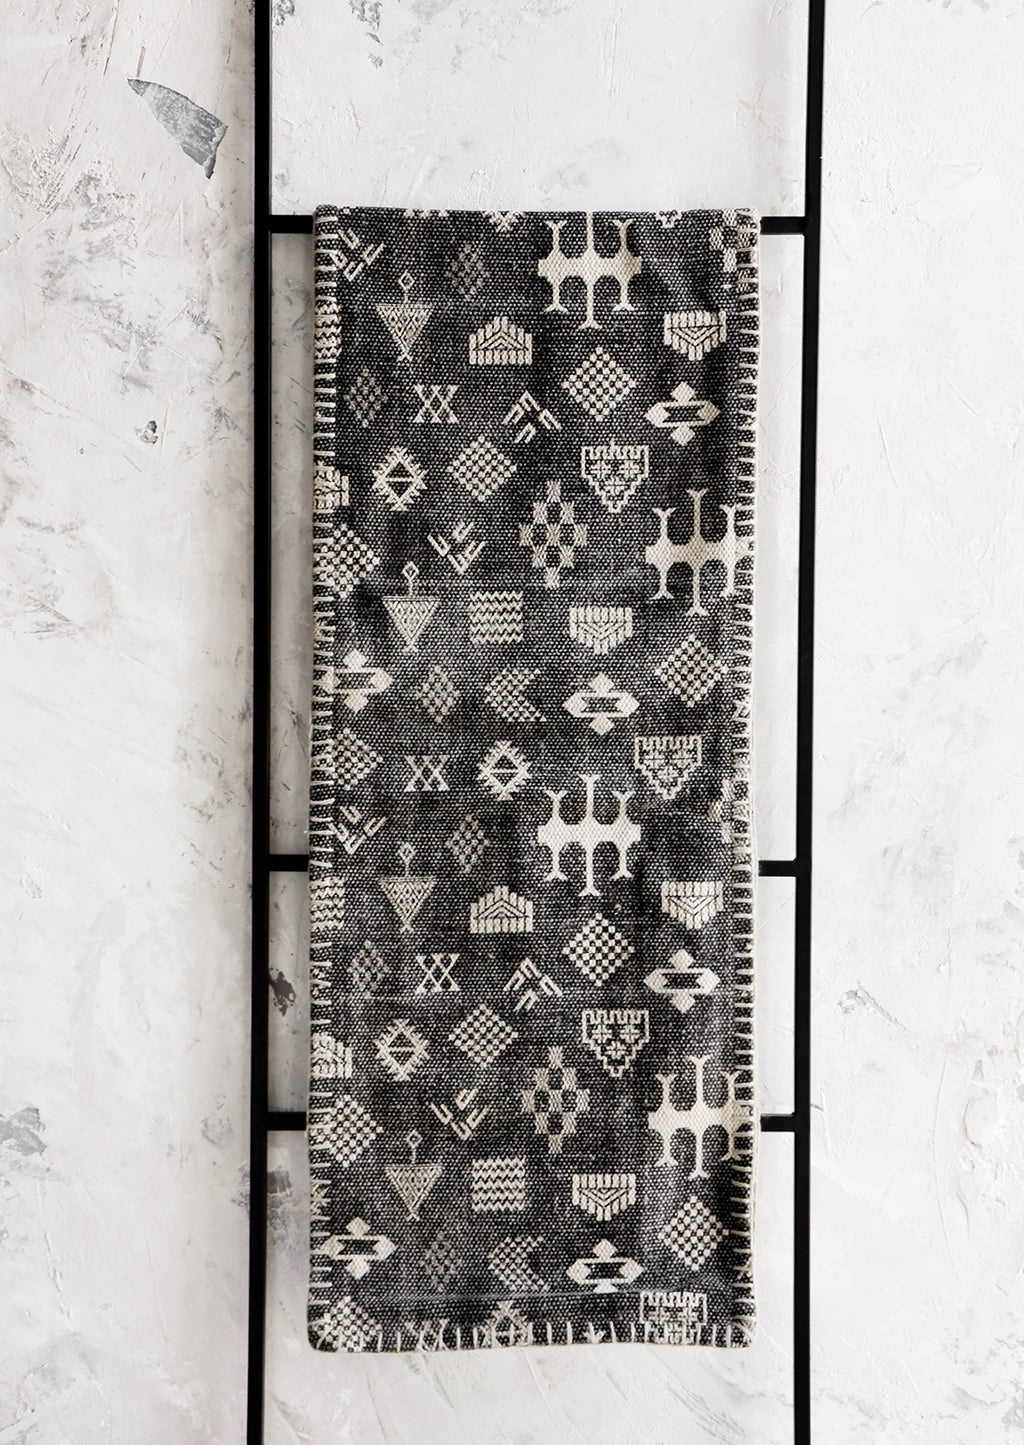 Black: Fabric table runner with tribalistic symbols printed in white on black background with whipstitched edges